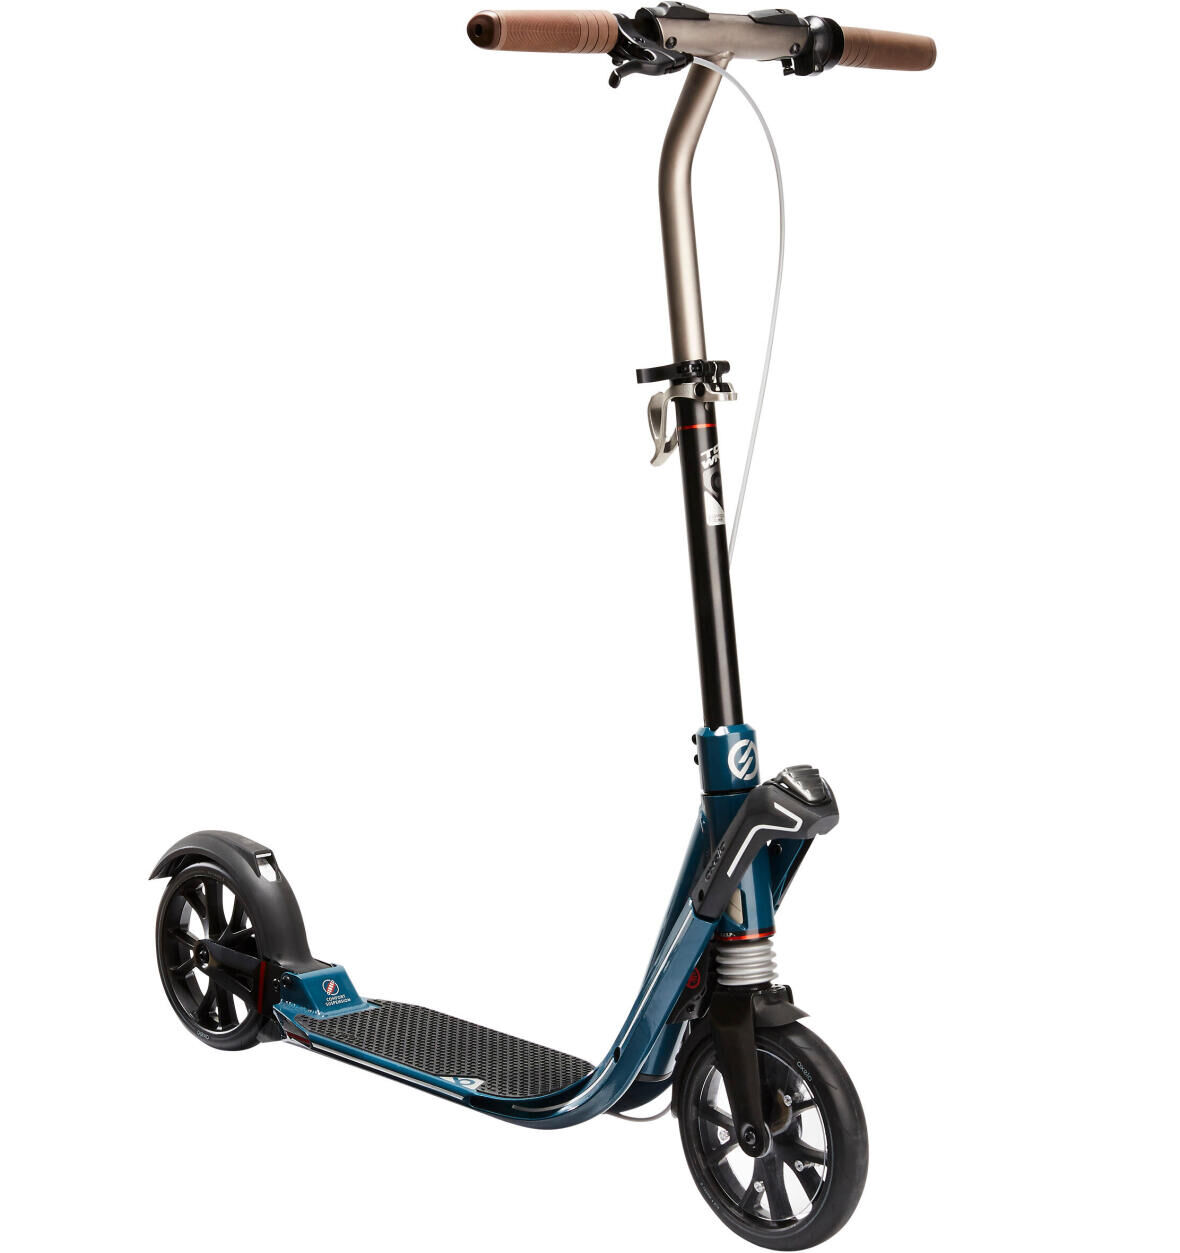 How to Choose an Adult Kick Scooter